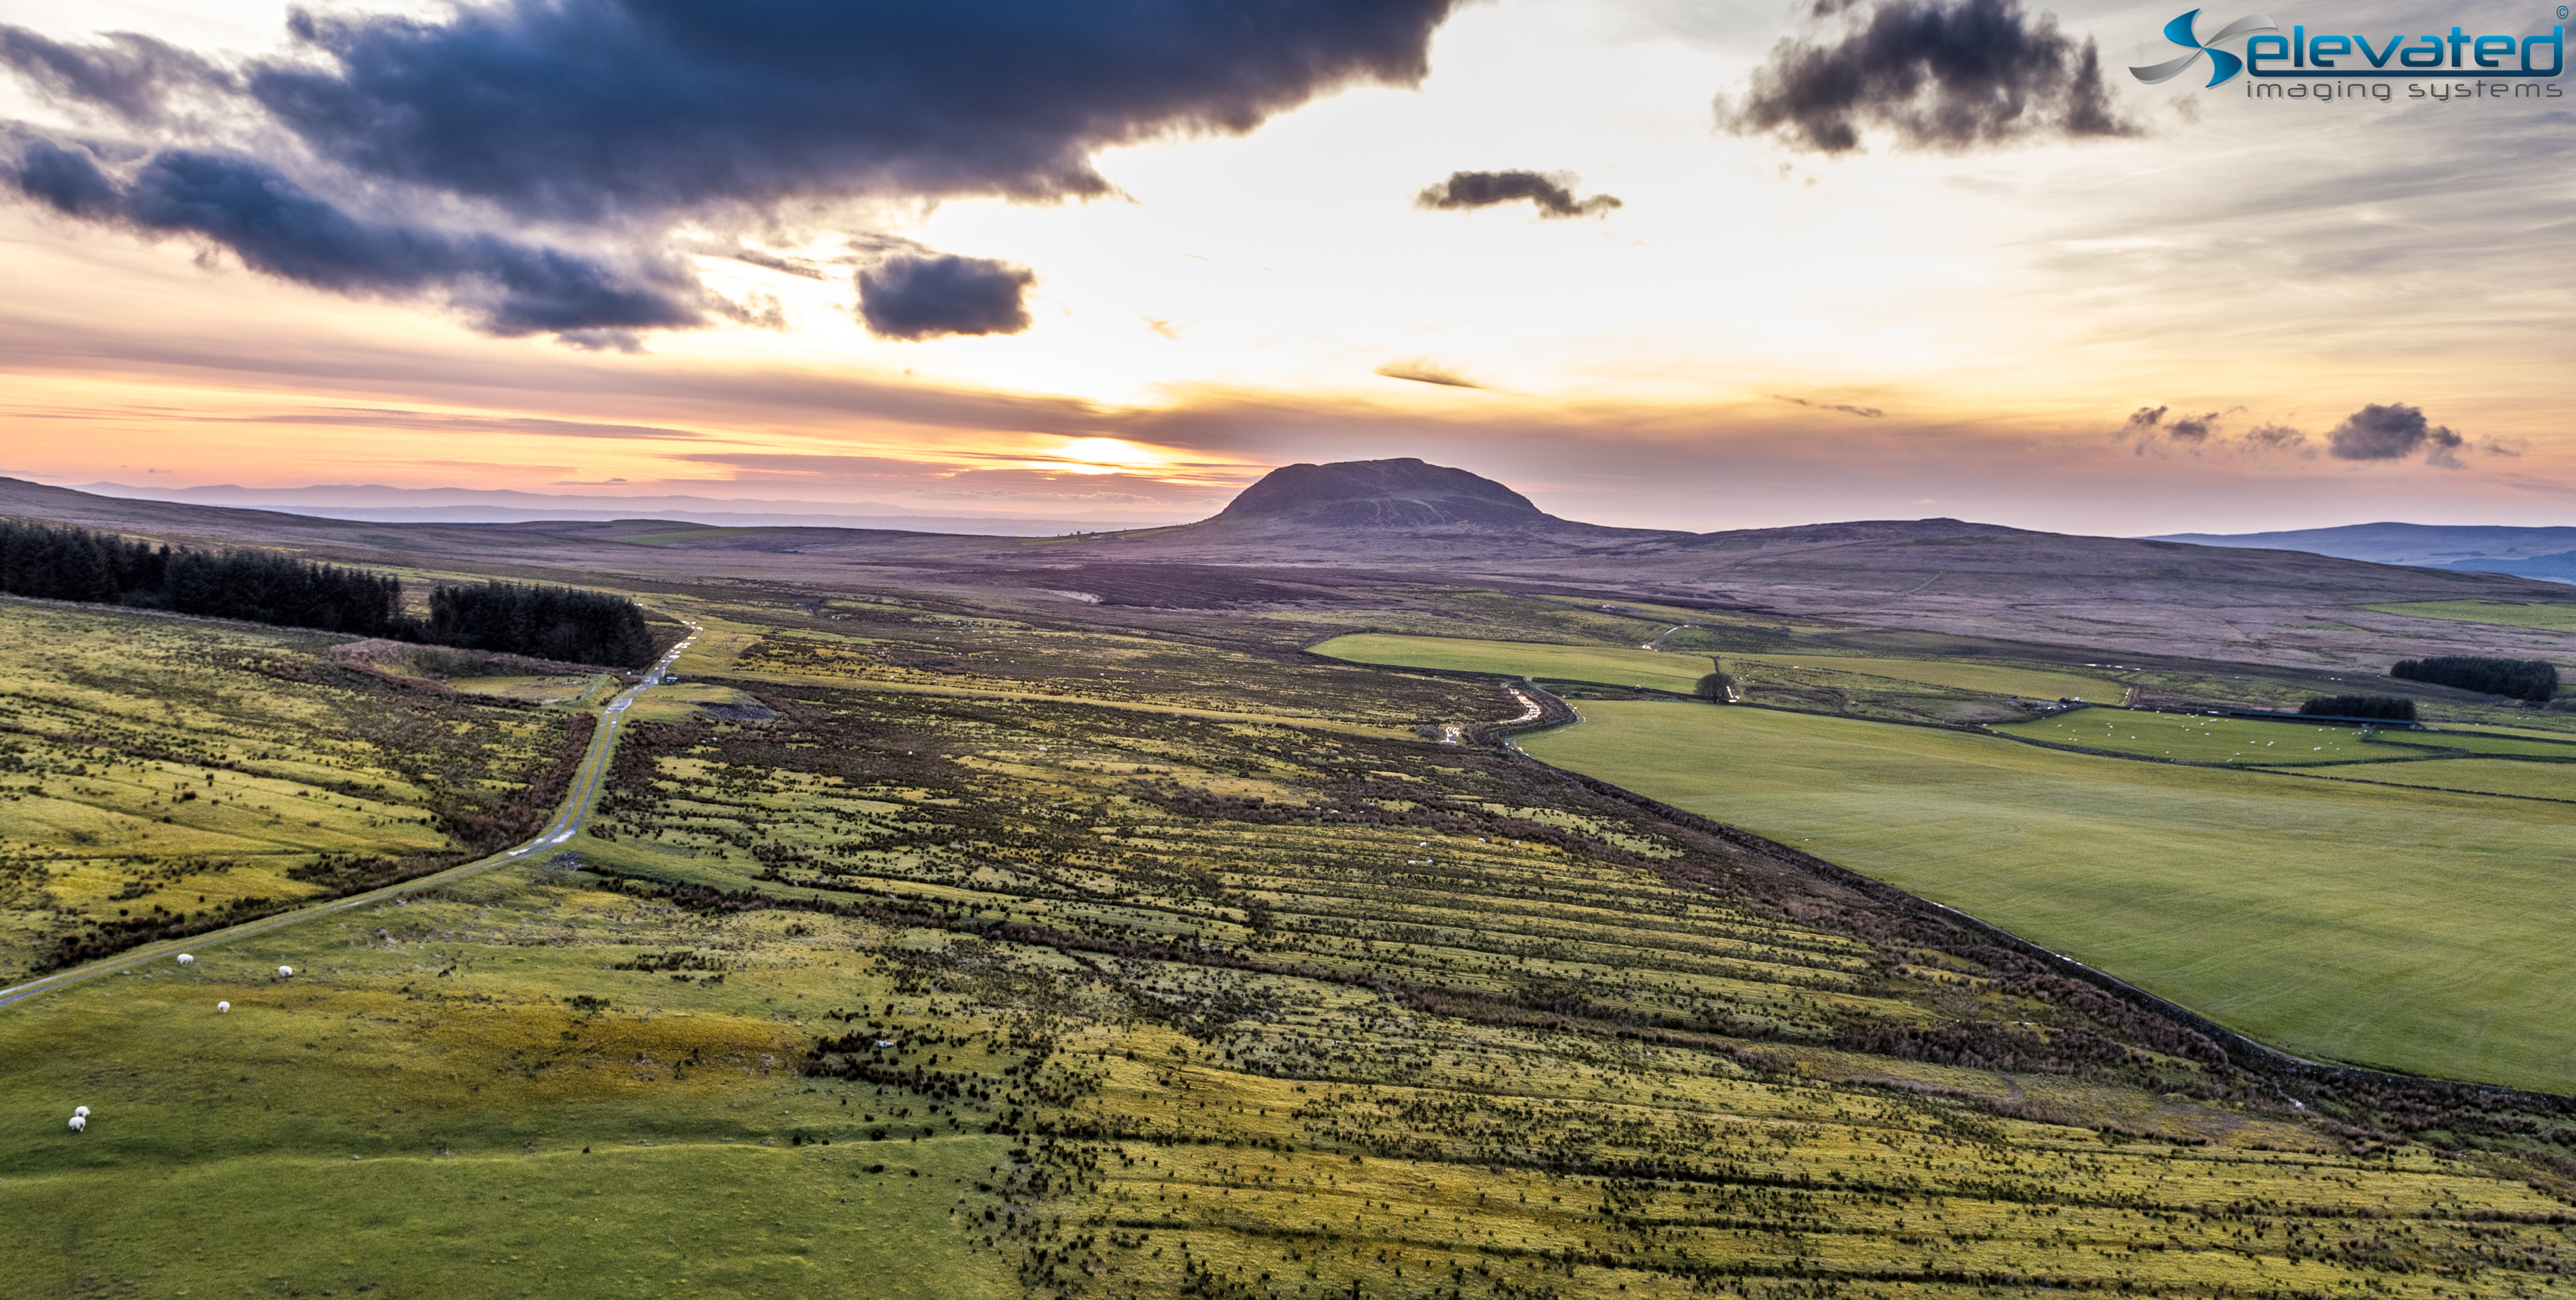 Slemish S Inspire 2 Elevated Imaging Systems Drone Photography County Antrim-